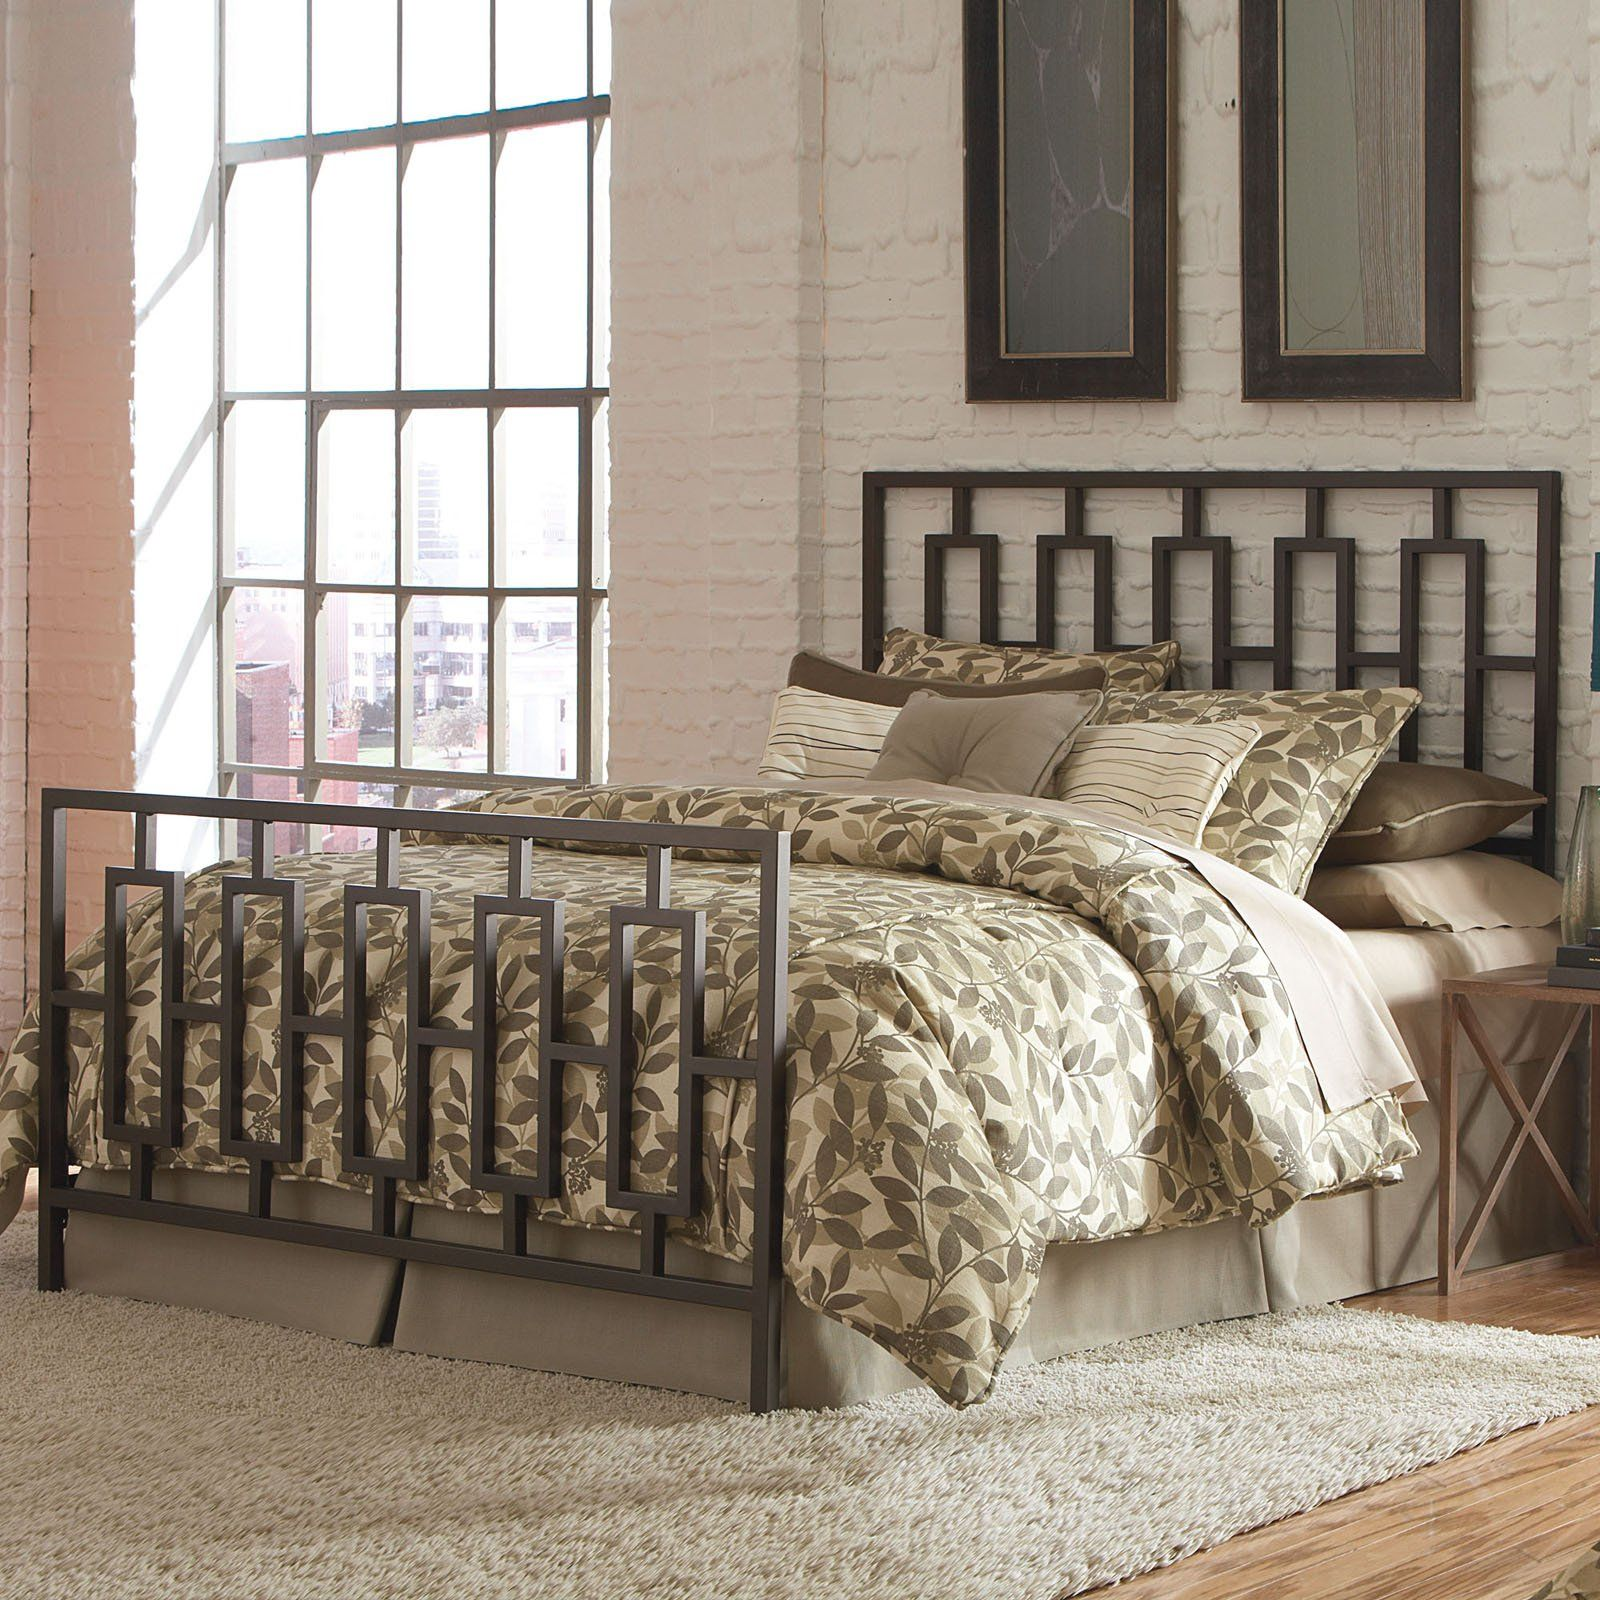 Fashion Bed Group Miami Panel Bed B61444 Bed Styling Brown